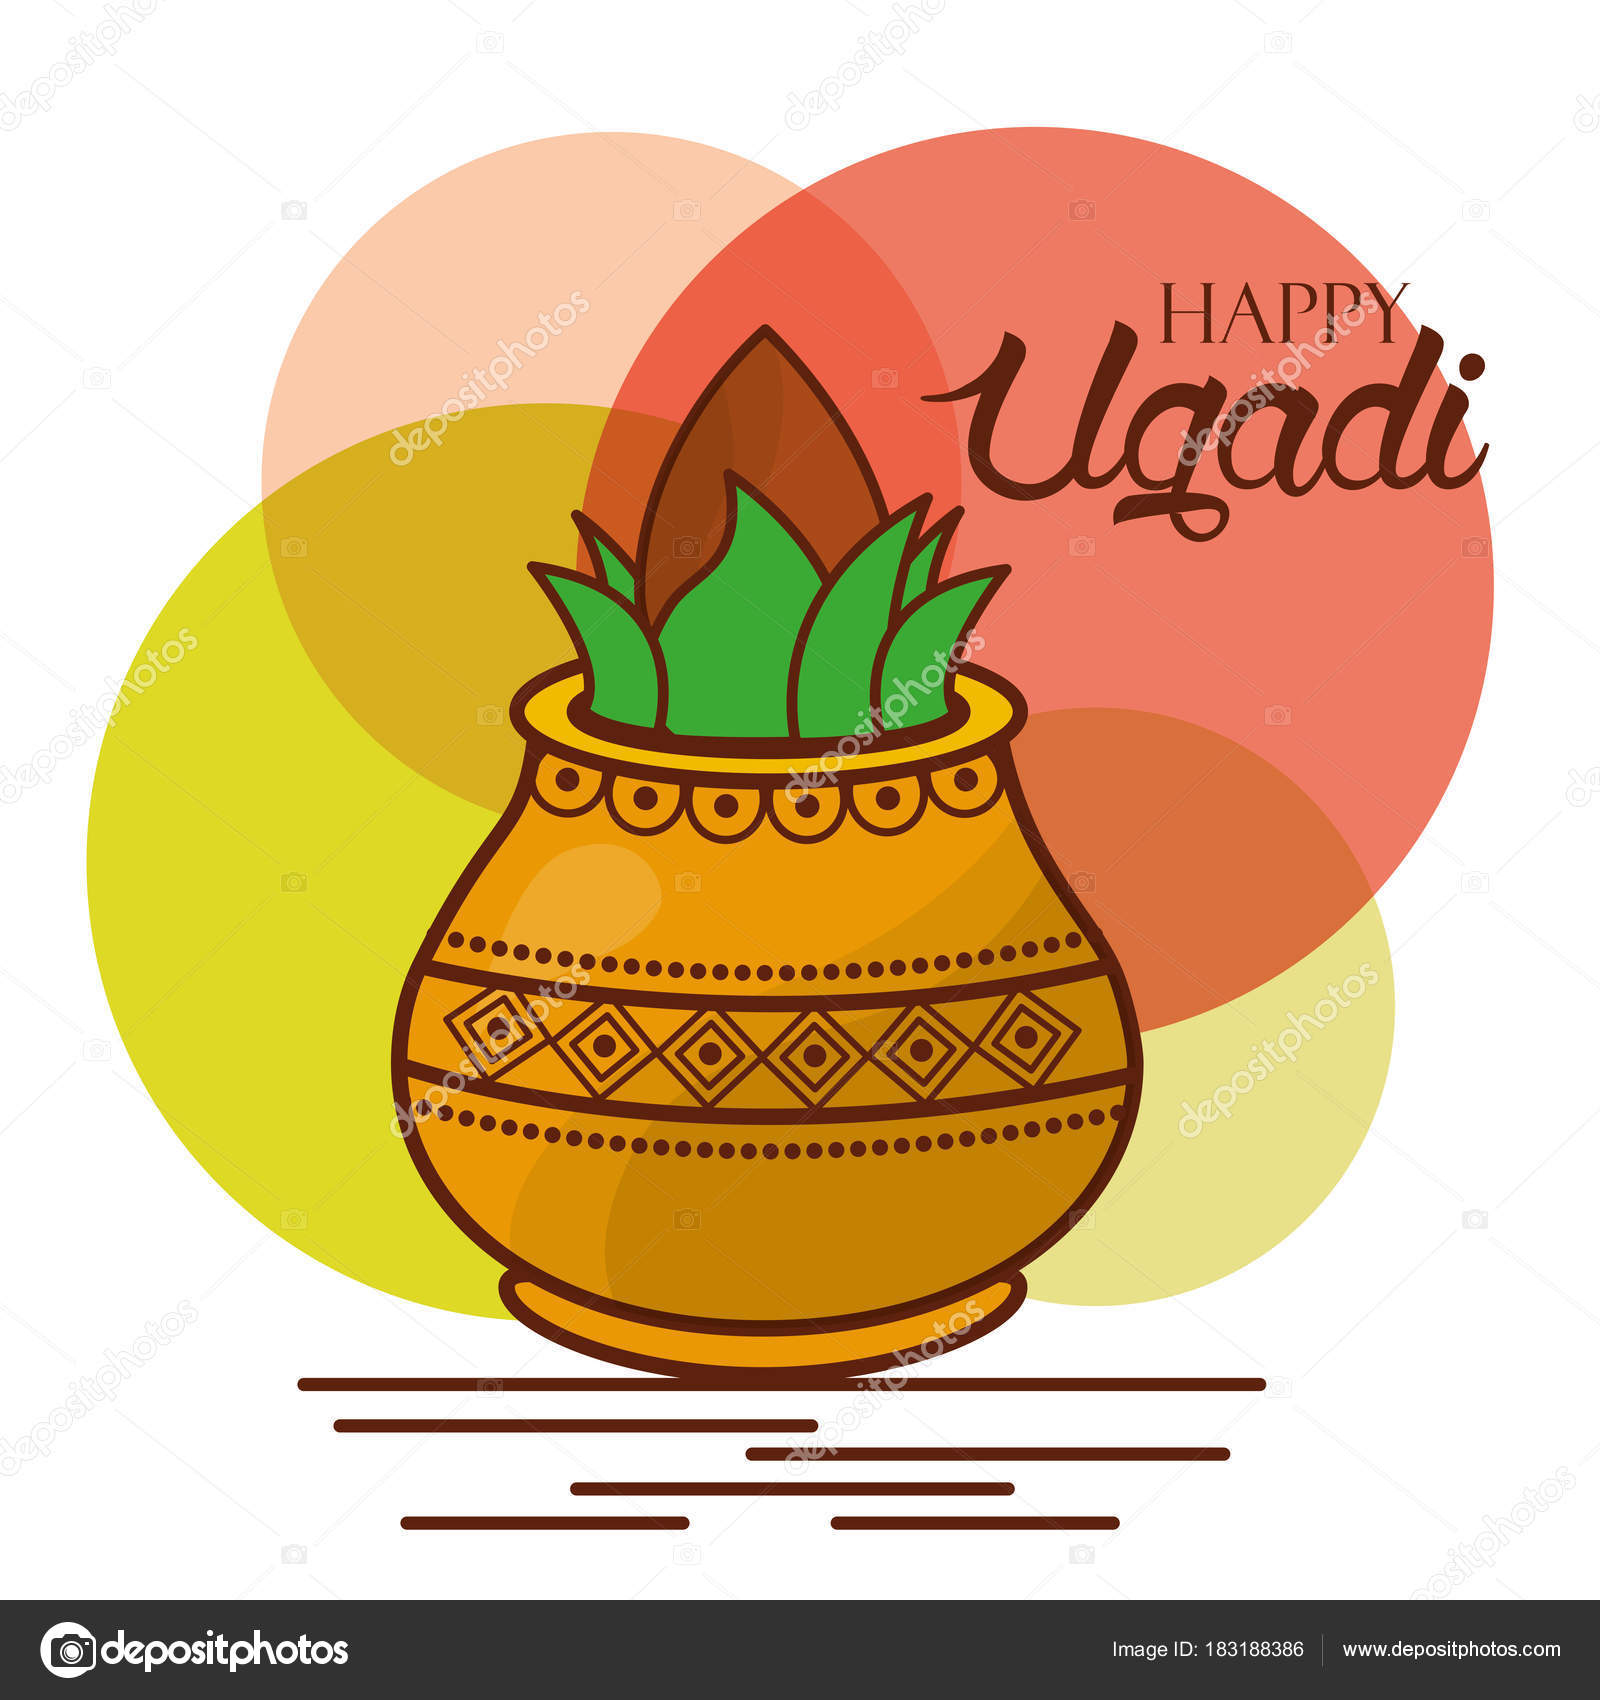 Happy ugadi greeting card celebration festival stock vector happy ugadi greeting card celebration festival stock vector kristyandbryce Images